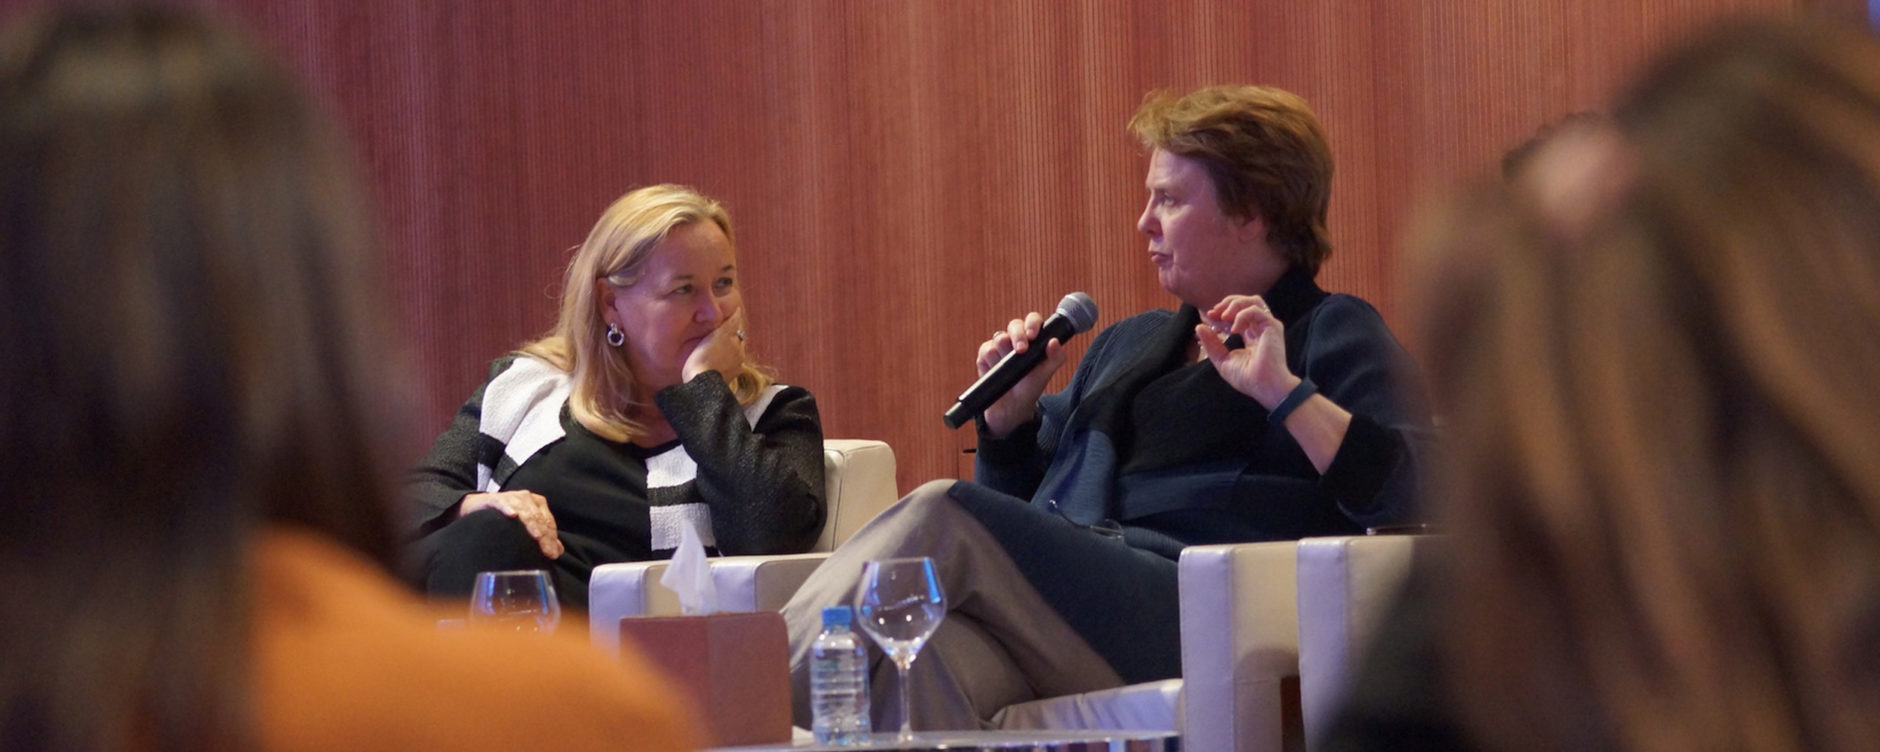 Professor Dr. Julia Lane (right), and Professor Dr. Patricia McCarney (Director, Global Cities Institute), panel discussion, Urban Data and Urban Indicators for Sustainability, Sustainable Urbanism - New Directions Workshop, 21 March 2016. © Qatar University.